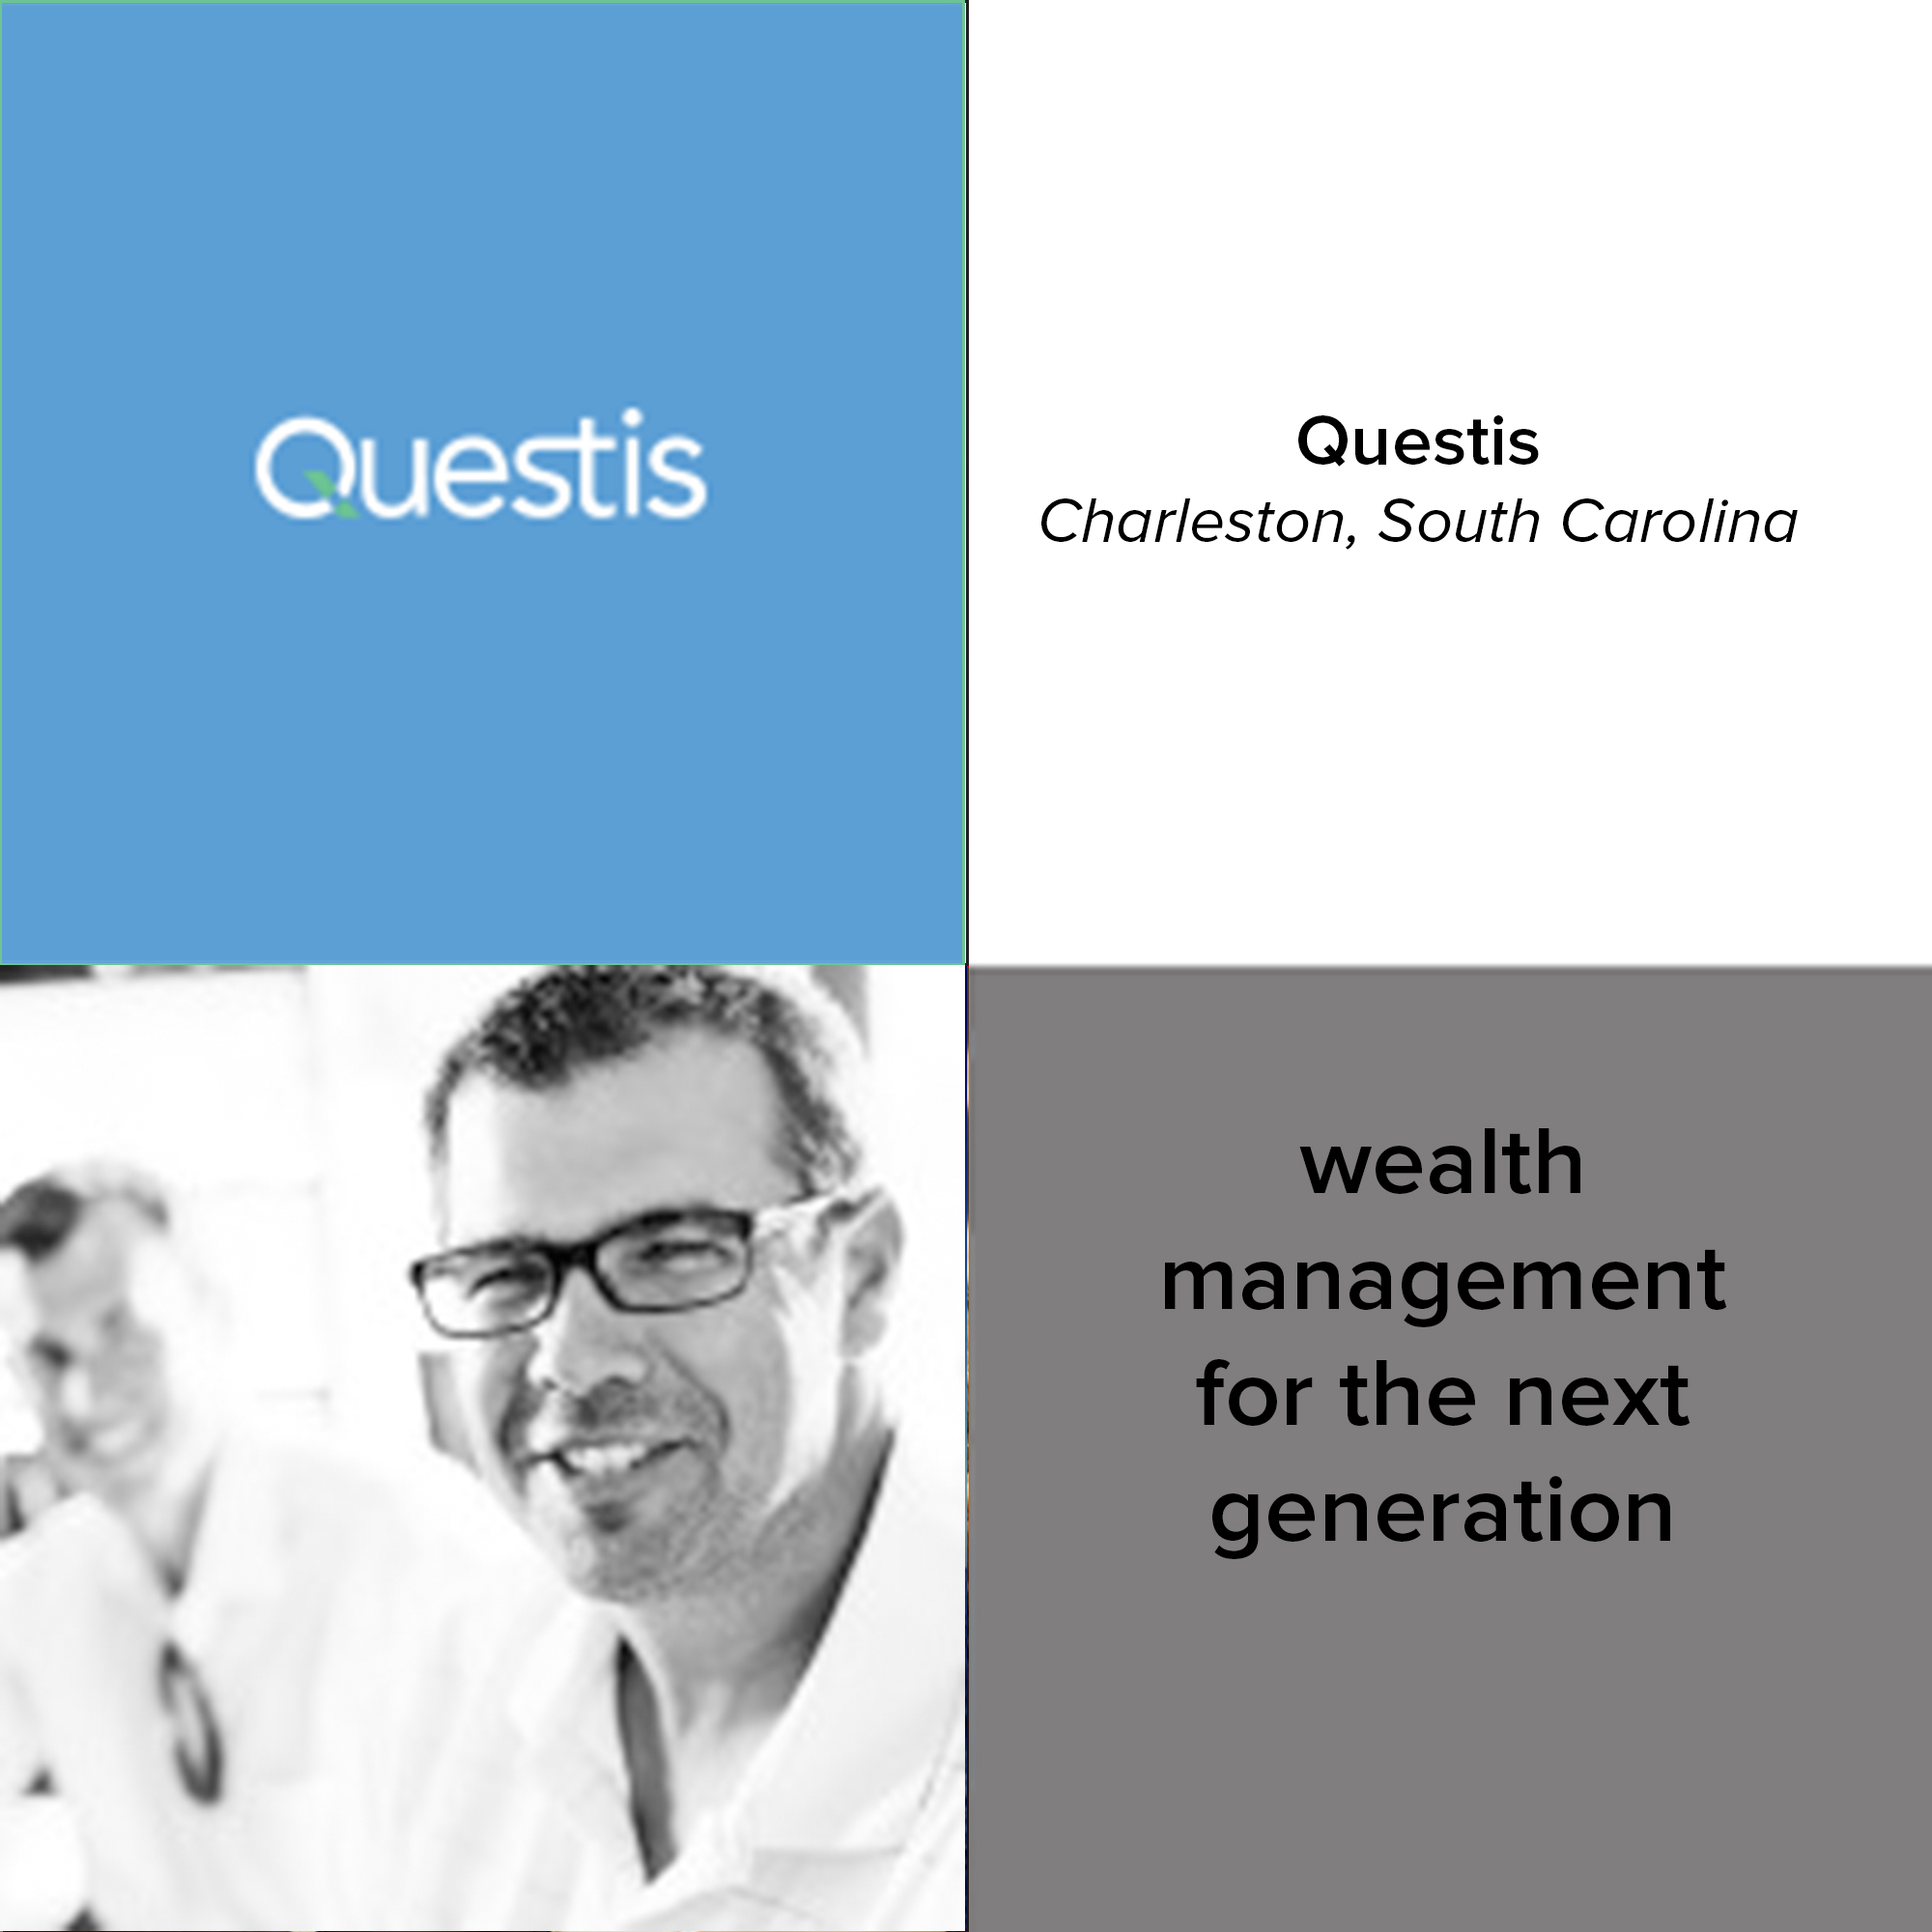 questis_2015website.jpg